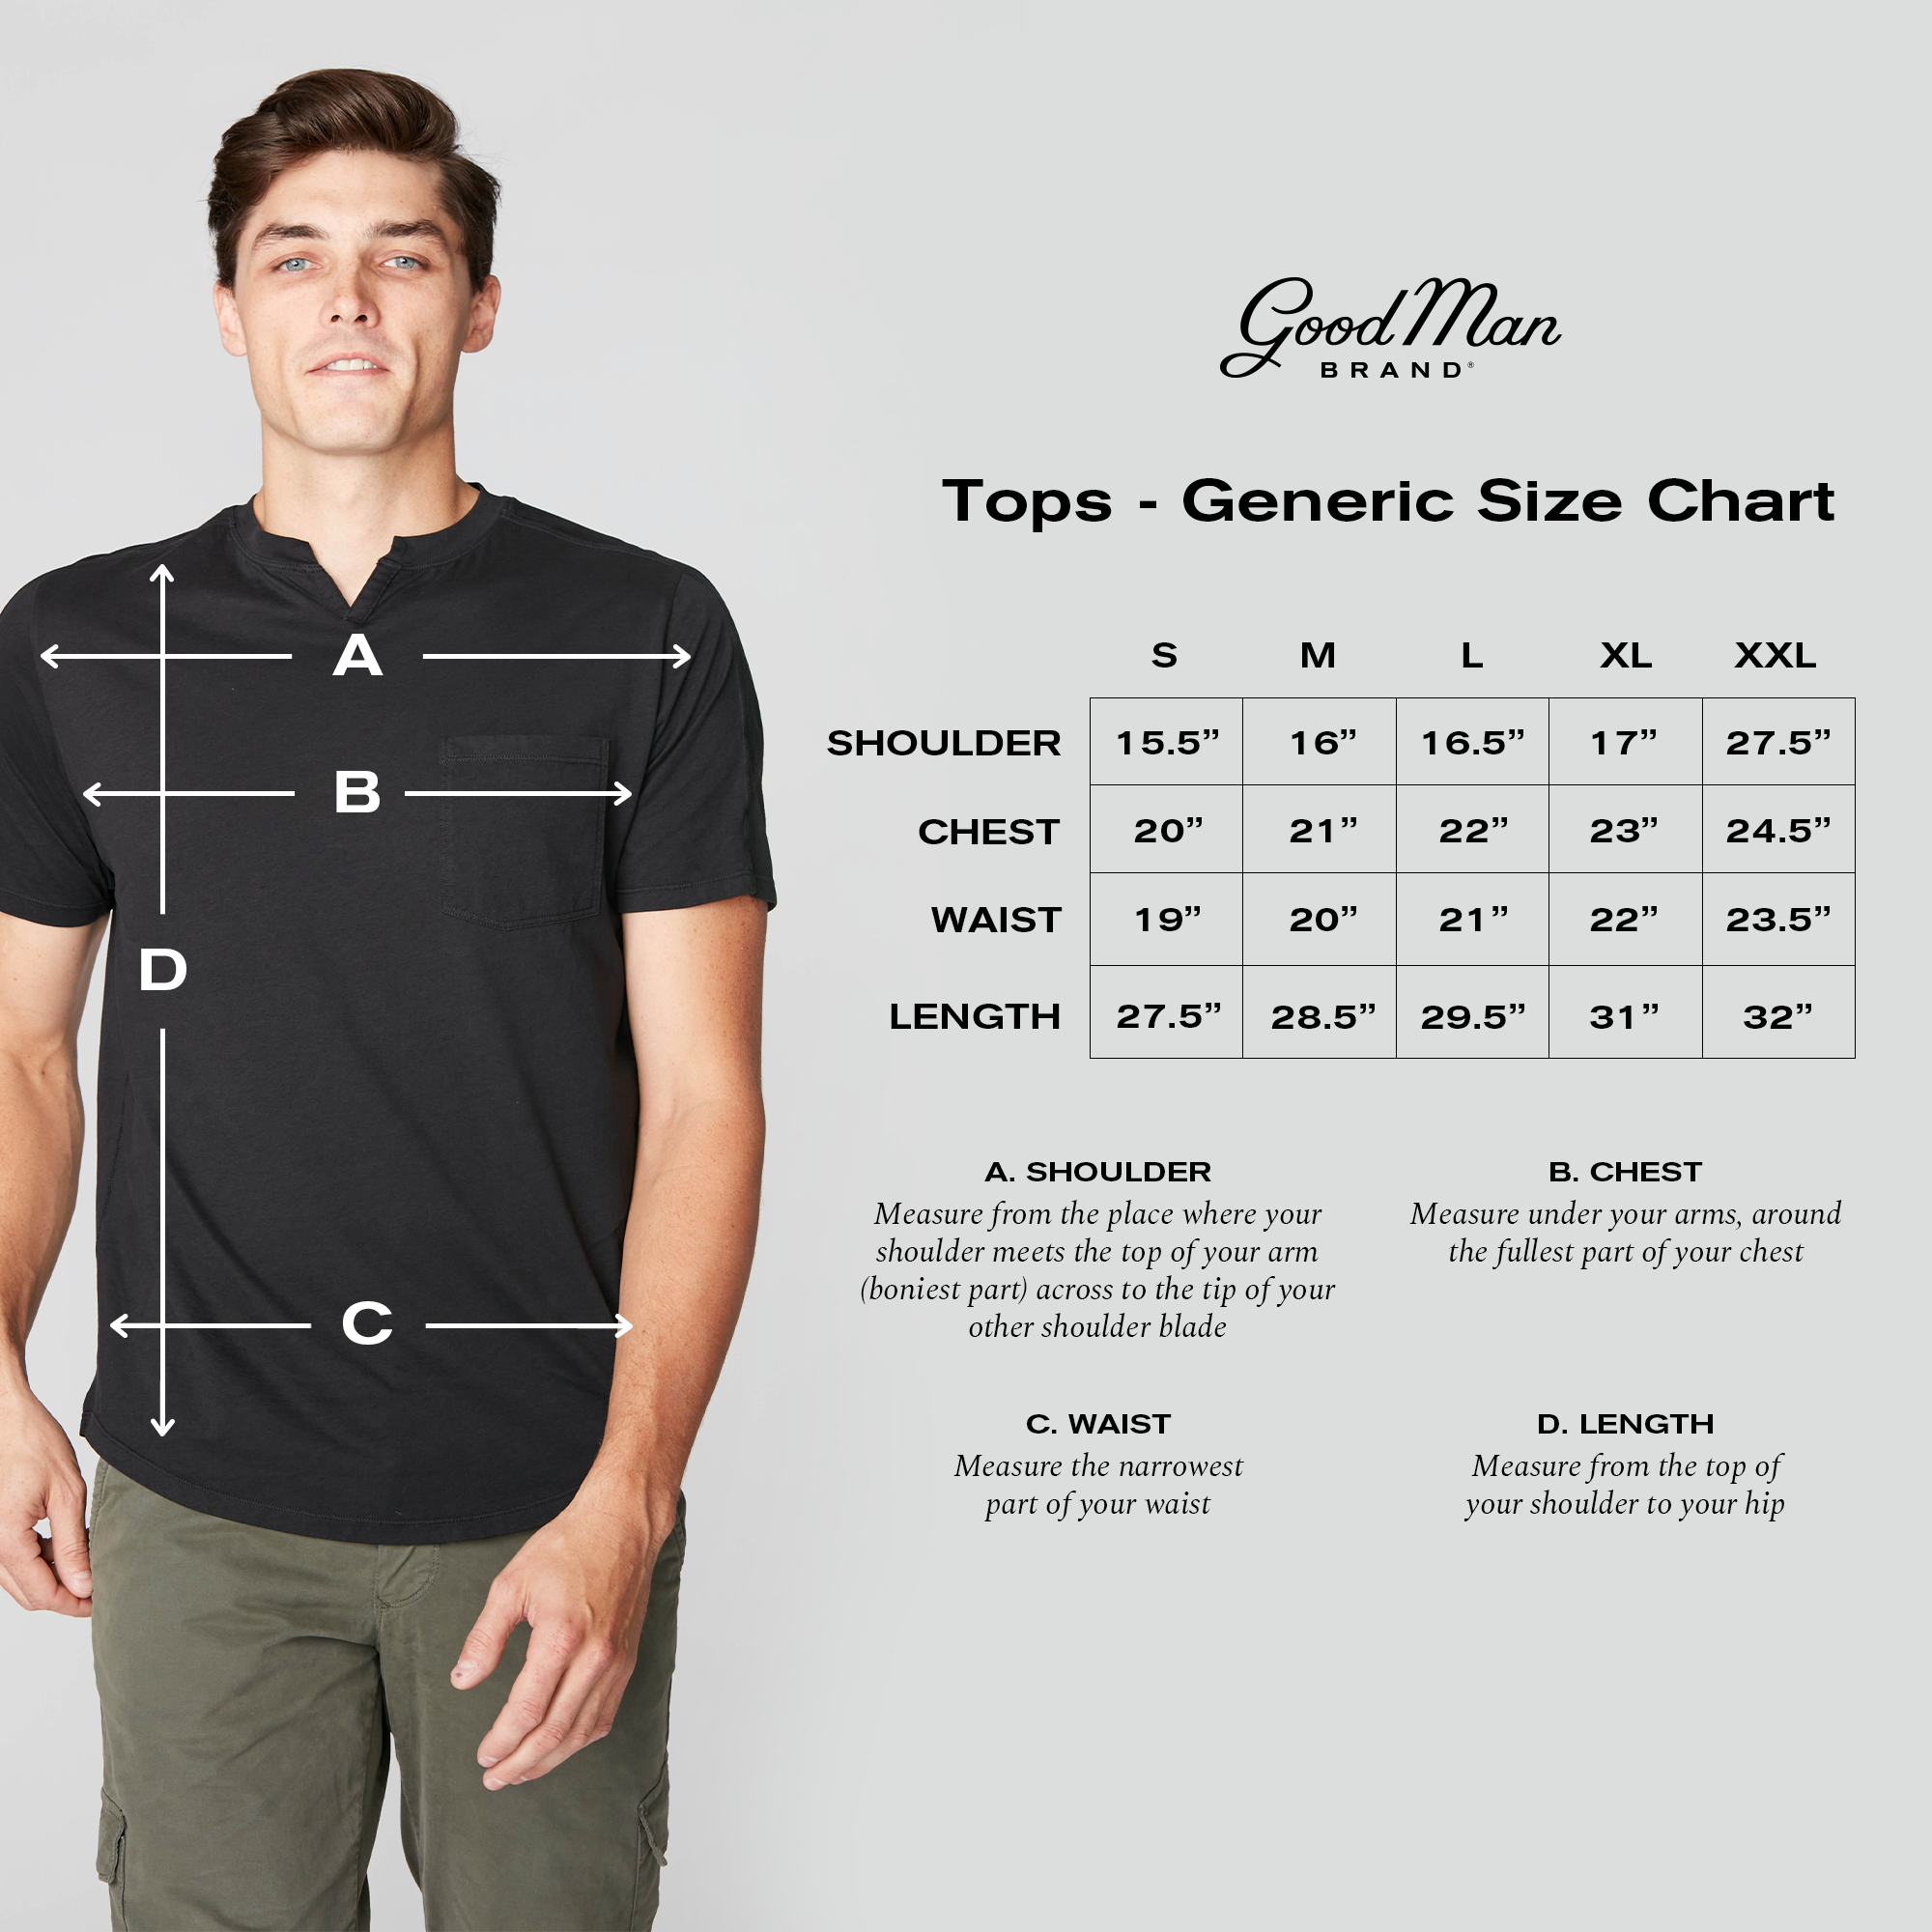 Good Man Brand Fit Guide - Top Alpha